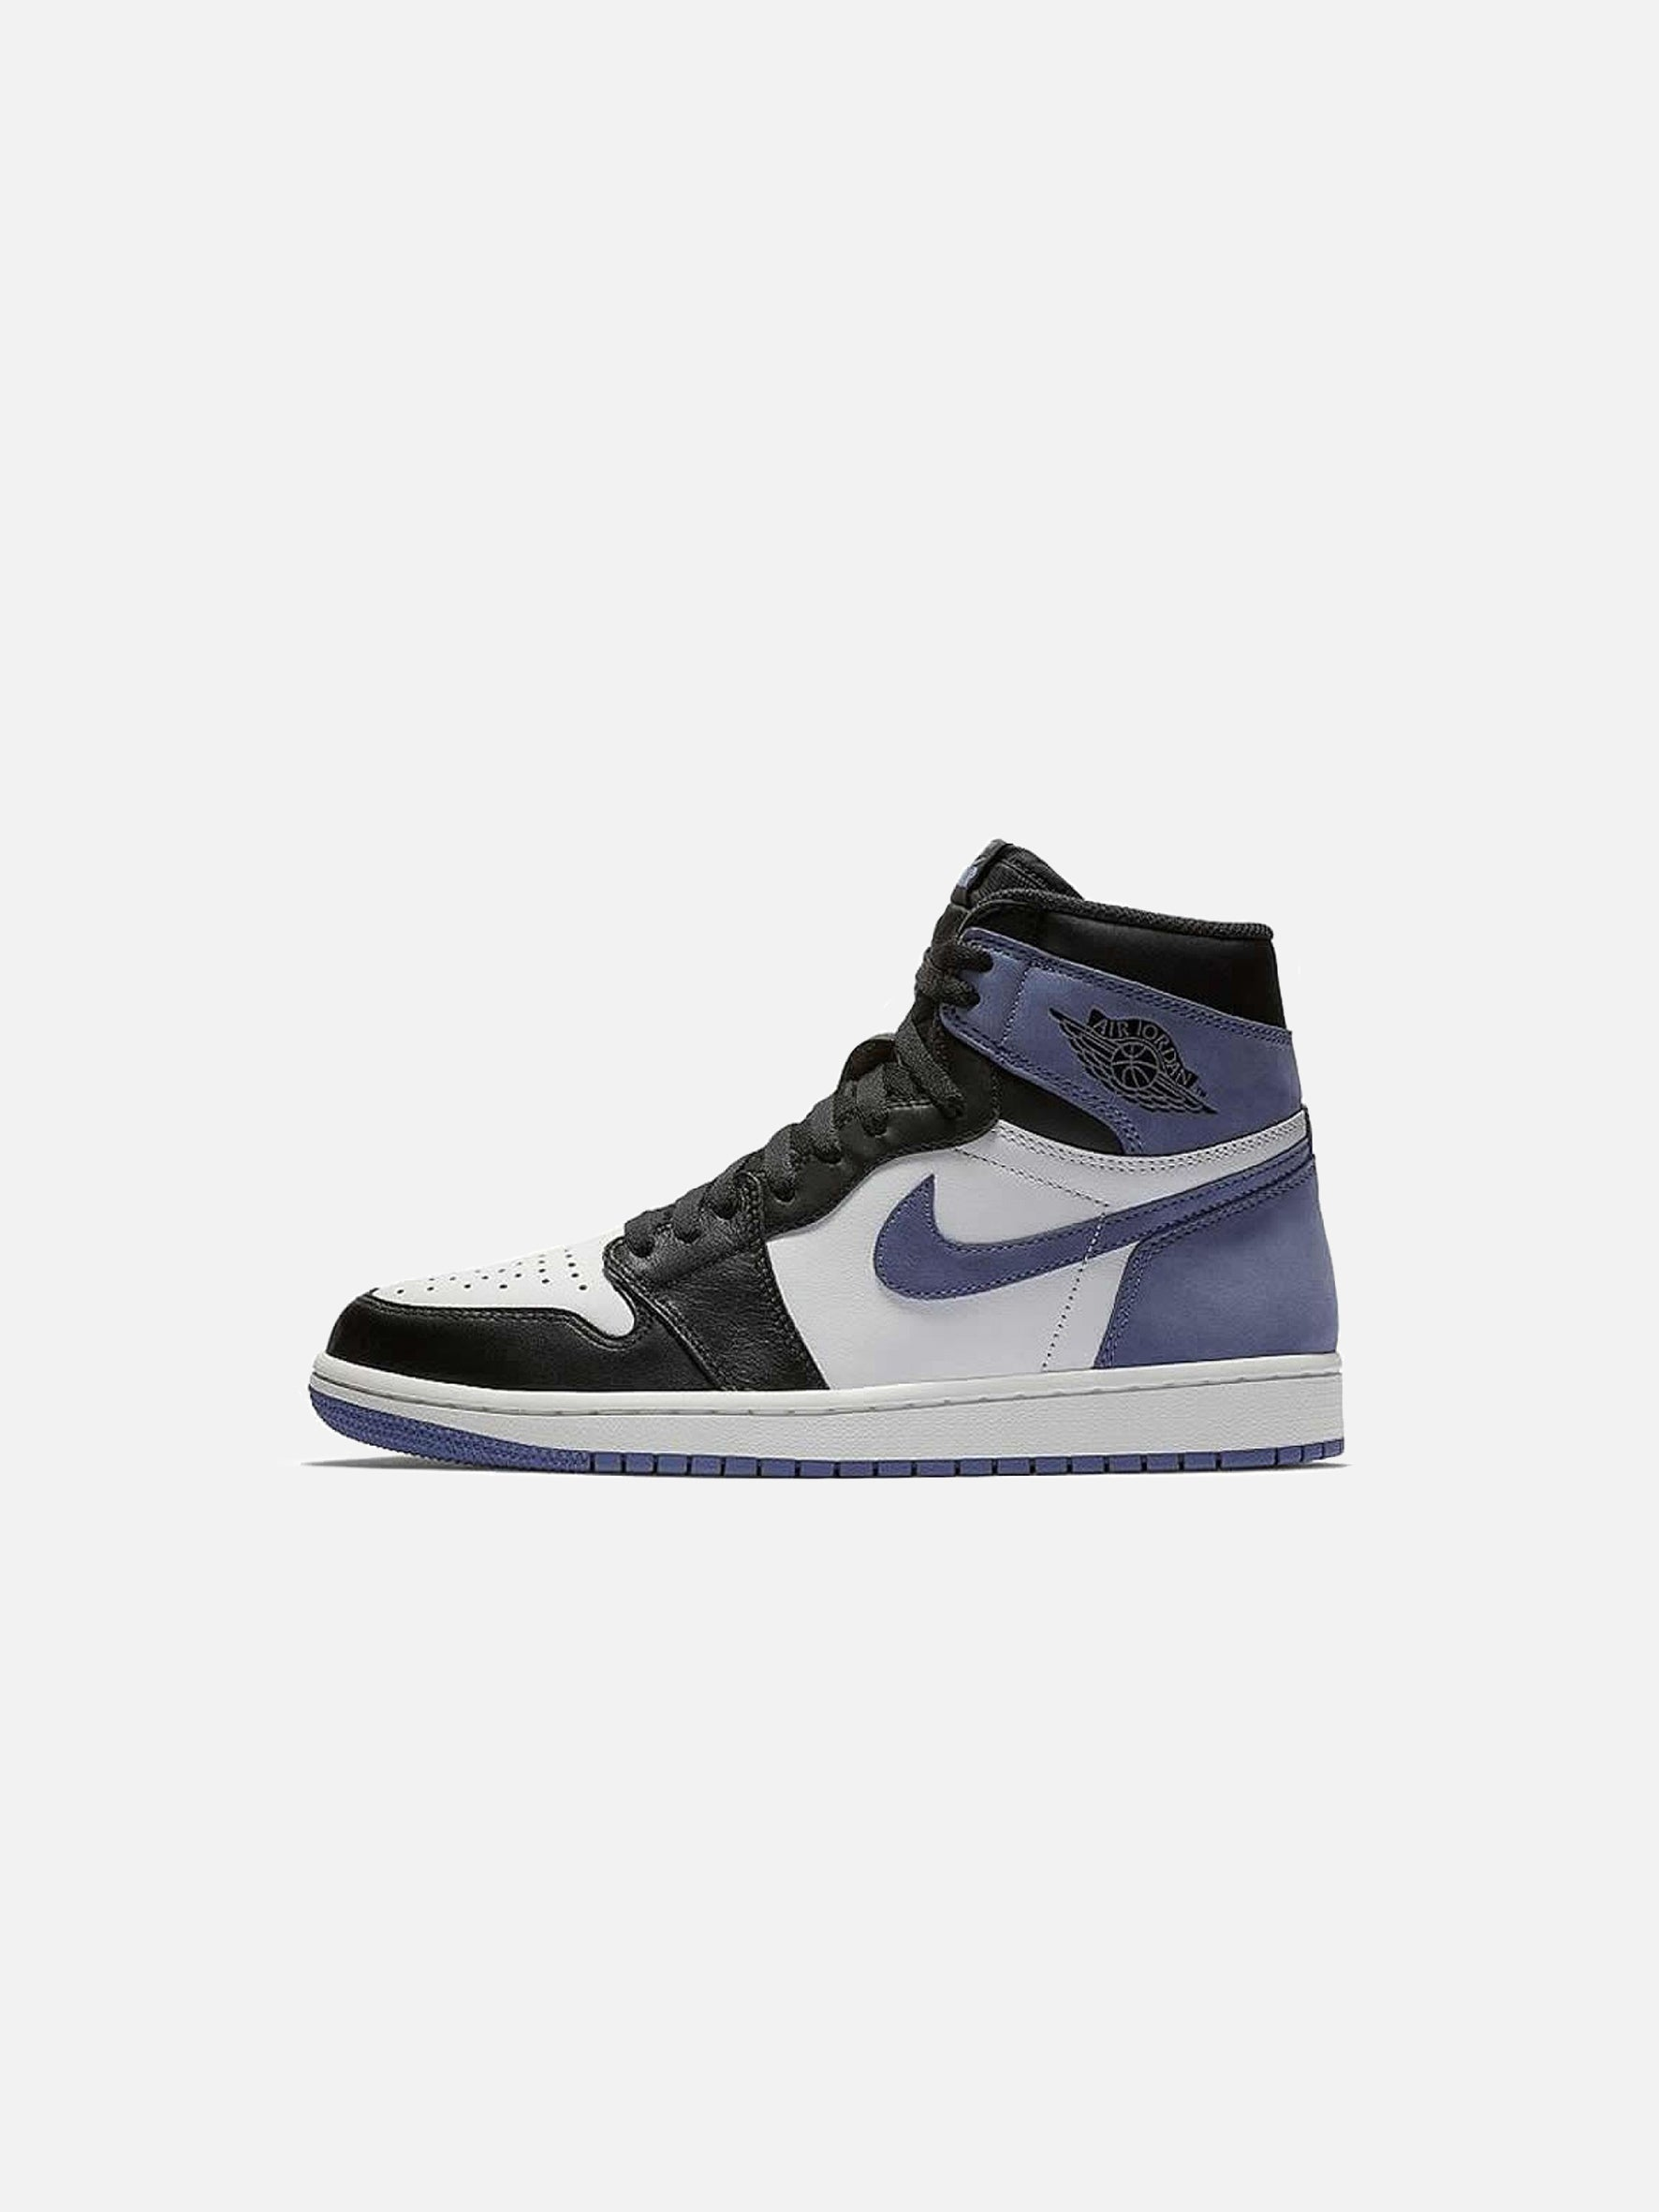 Nike Air Jordan 1 Retro High Blue Moon